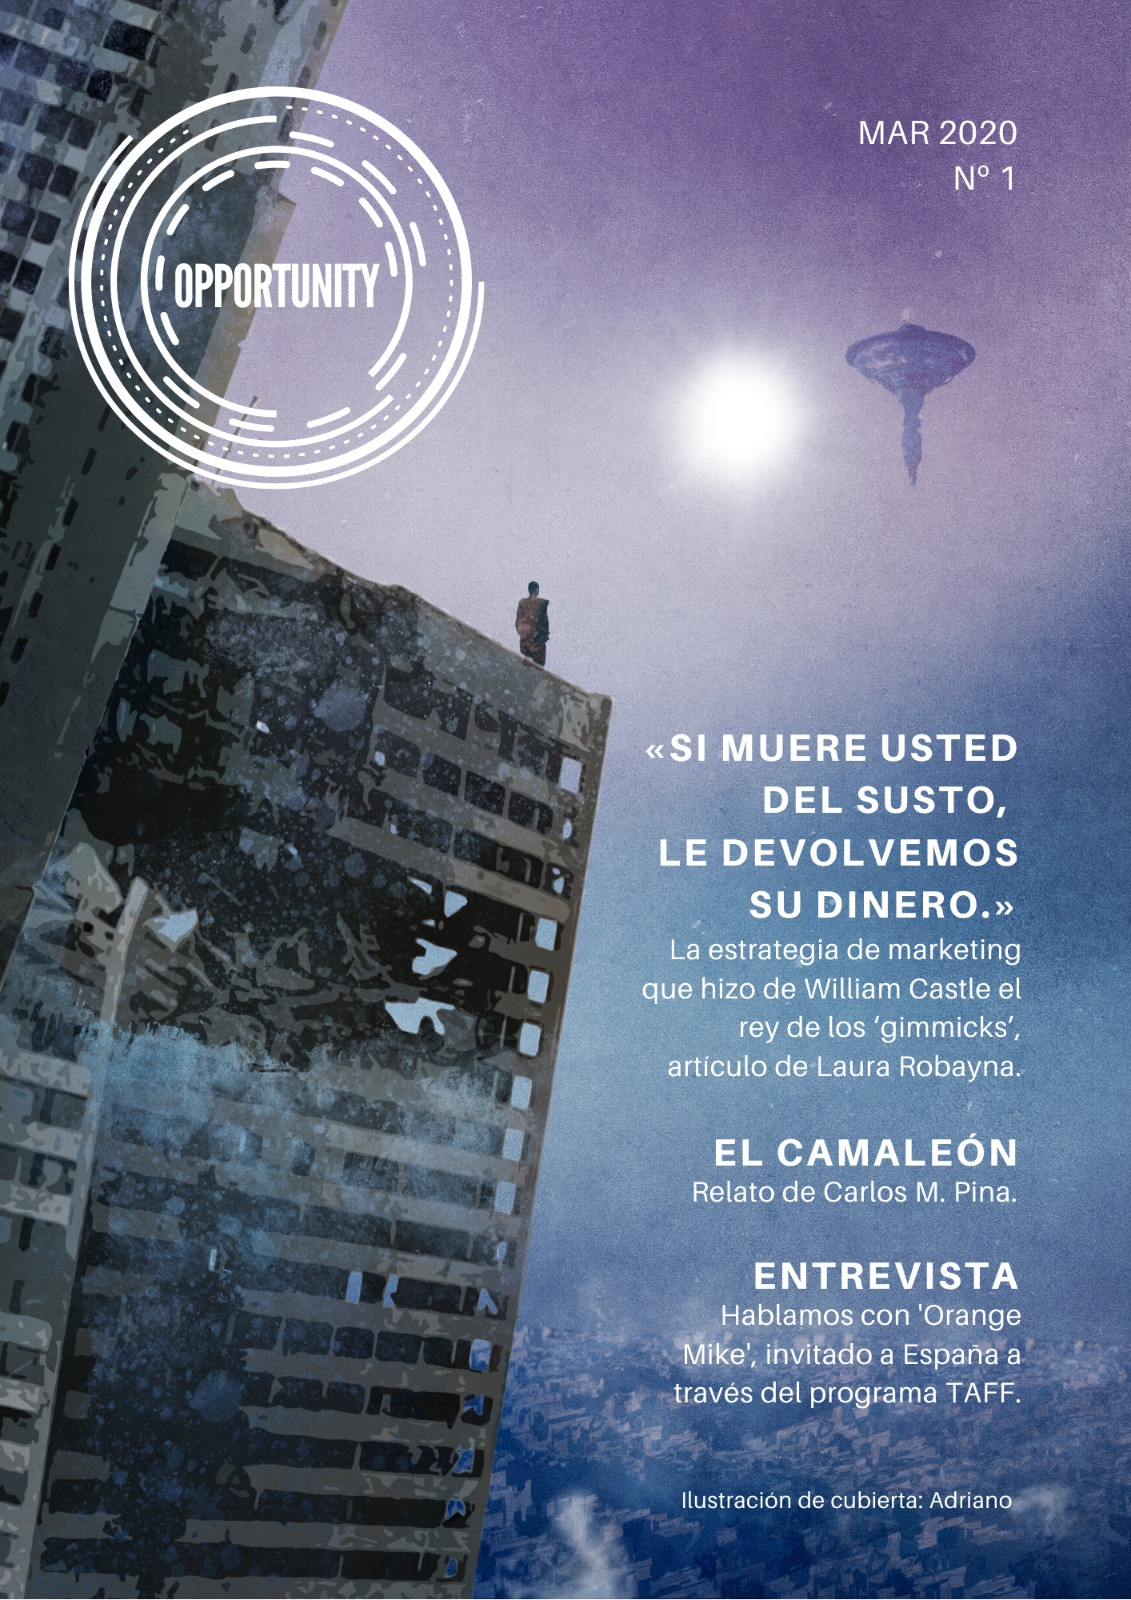 Revista Opportunity nº 1